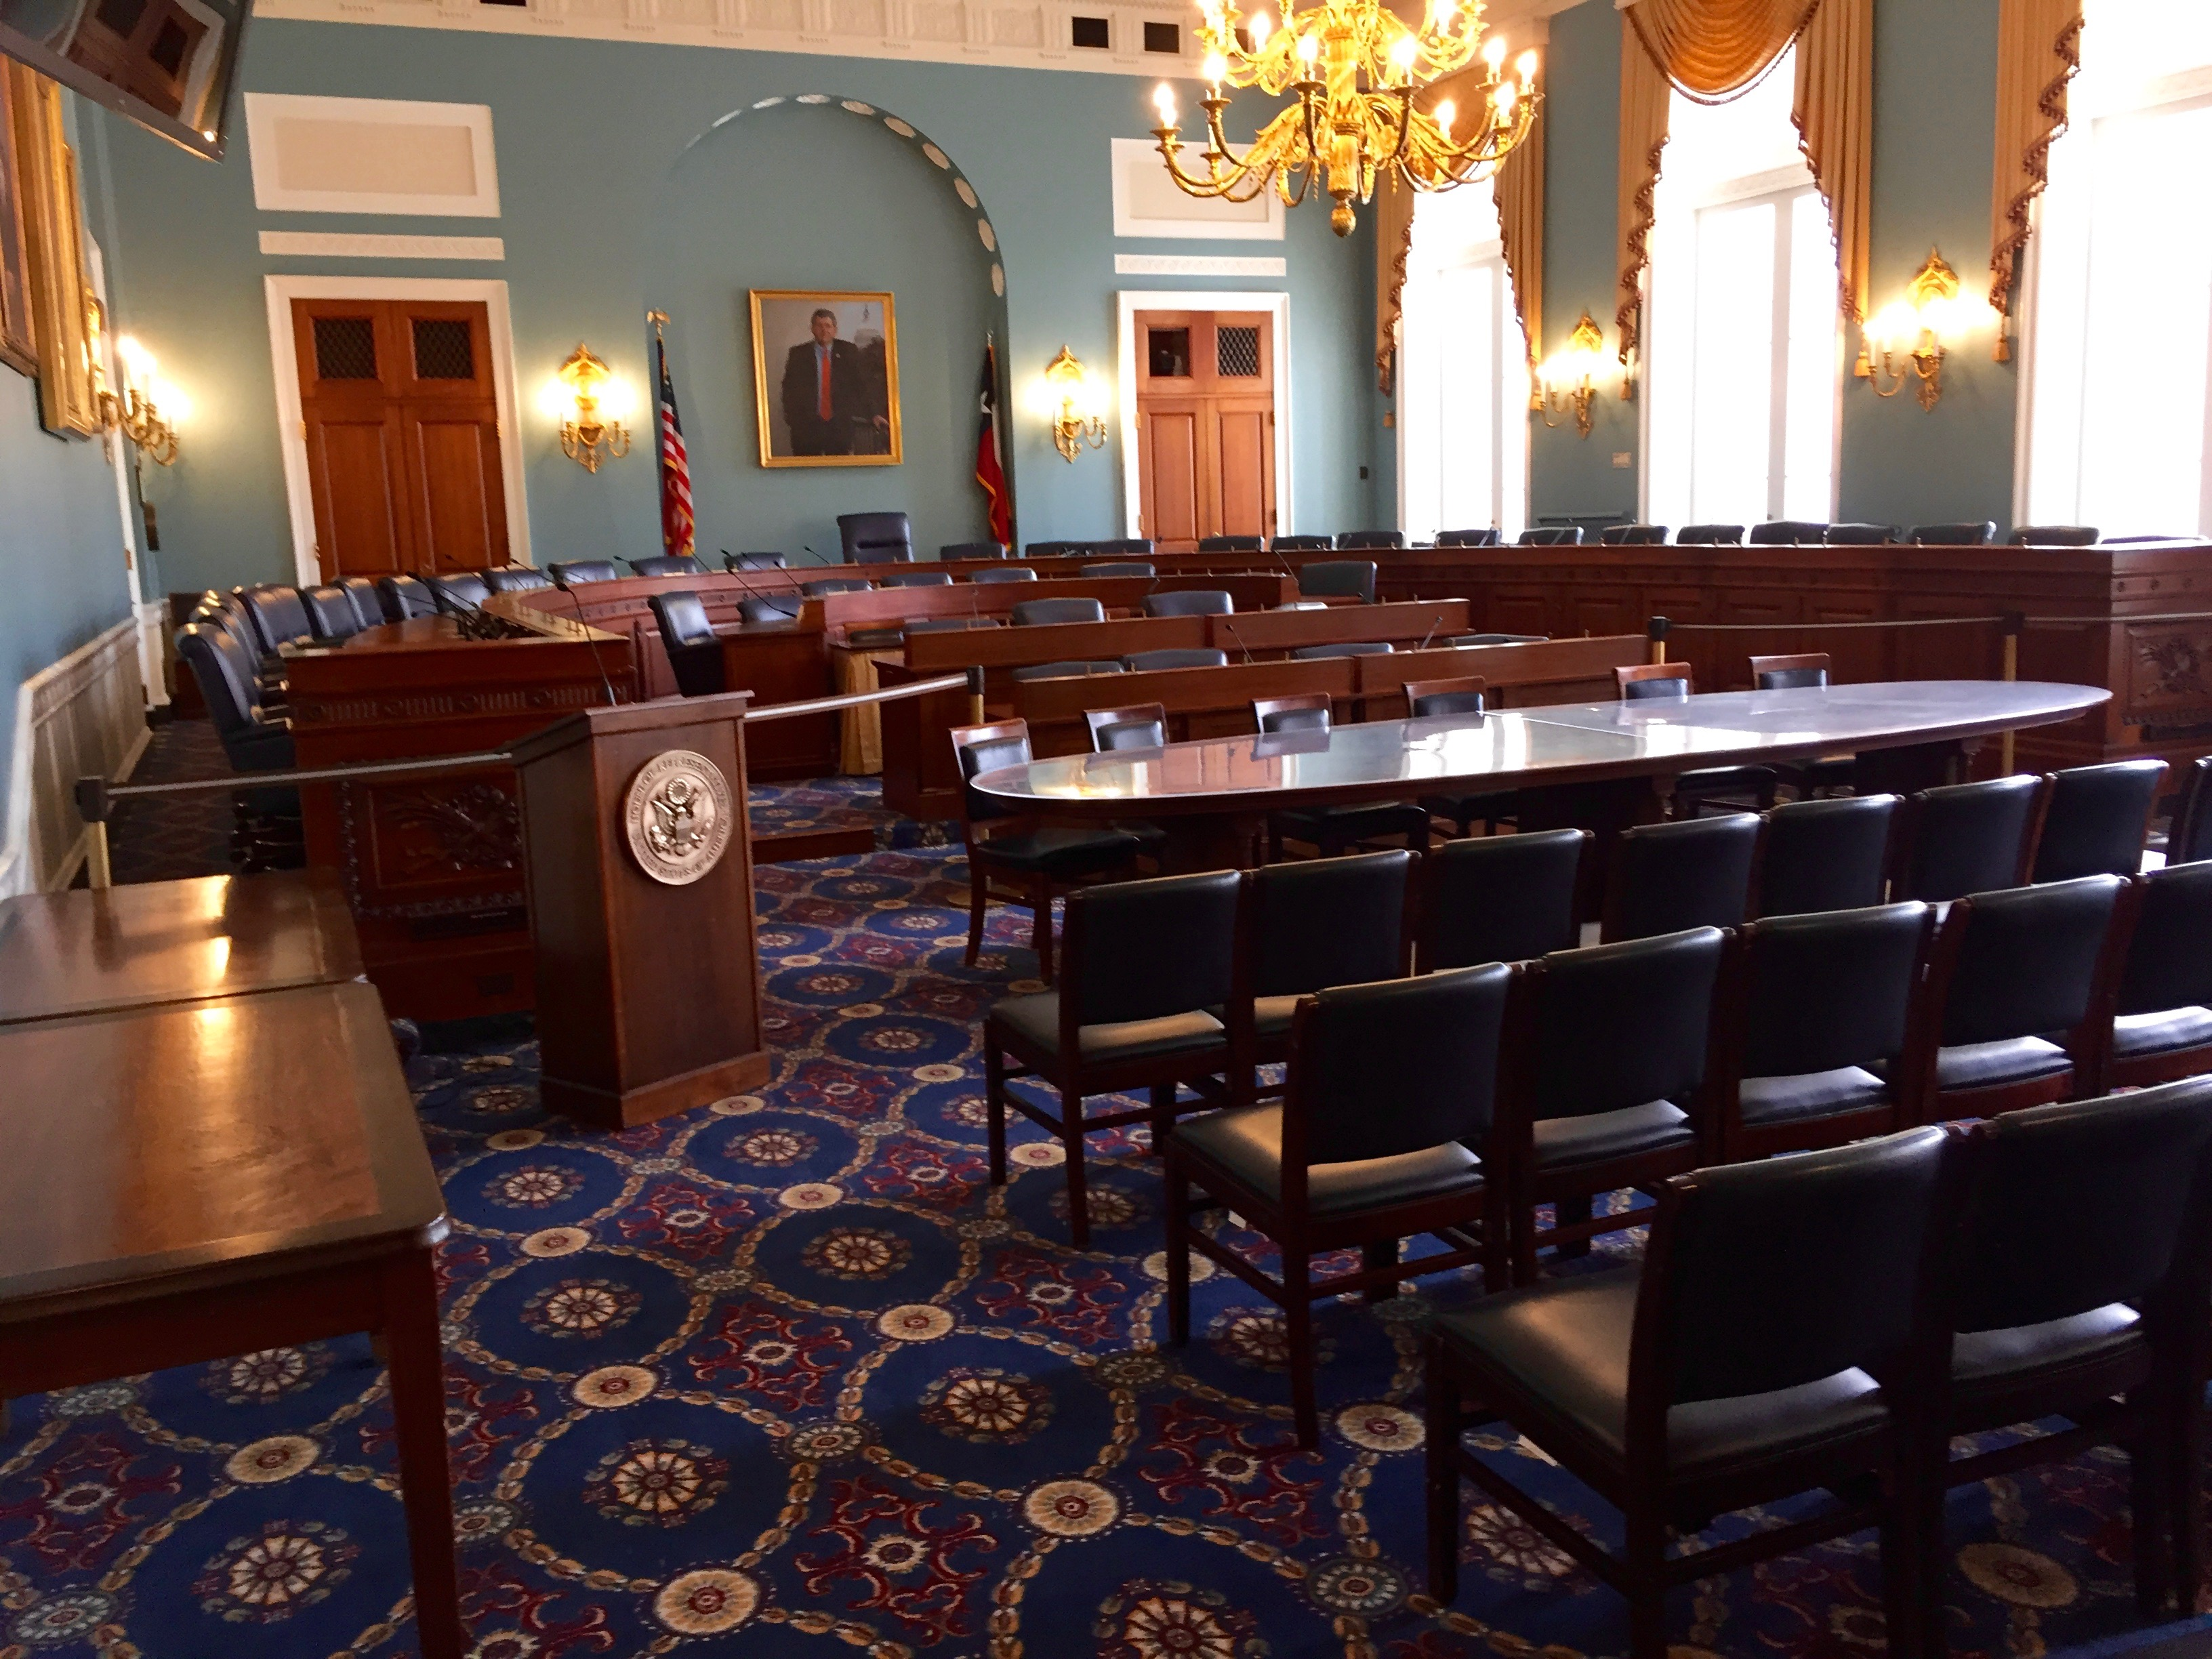 1300 Longworth - U.S. House Agriculture Committee Room